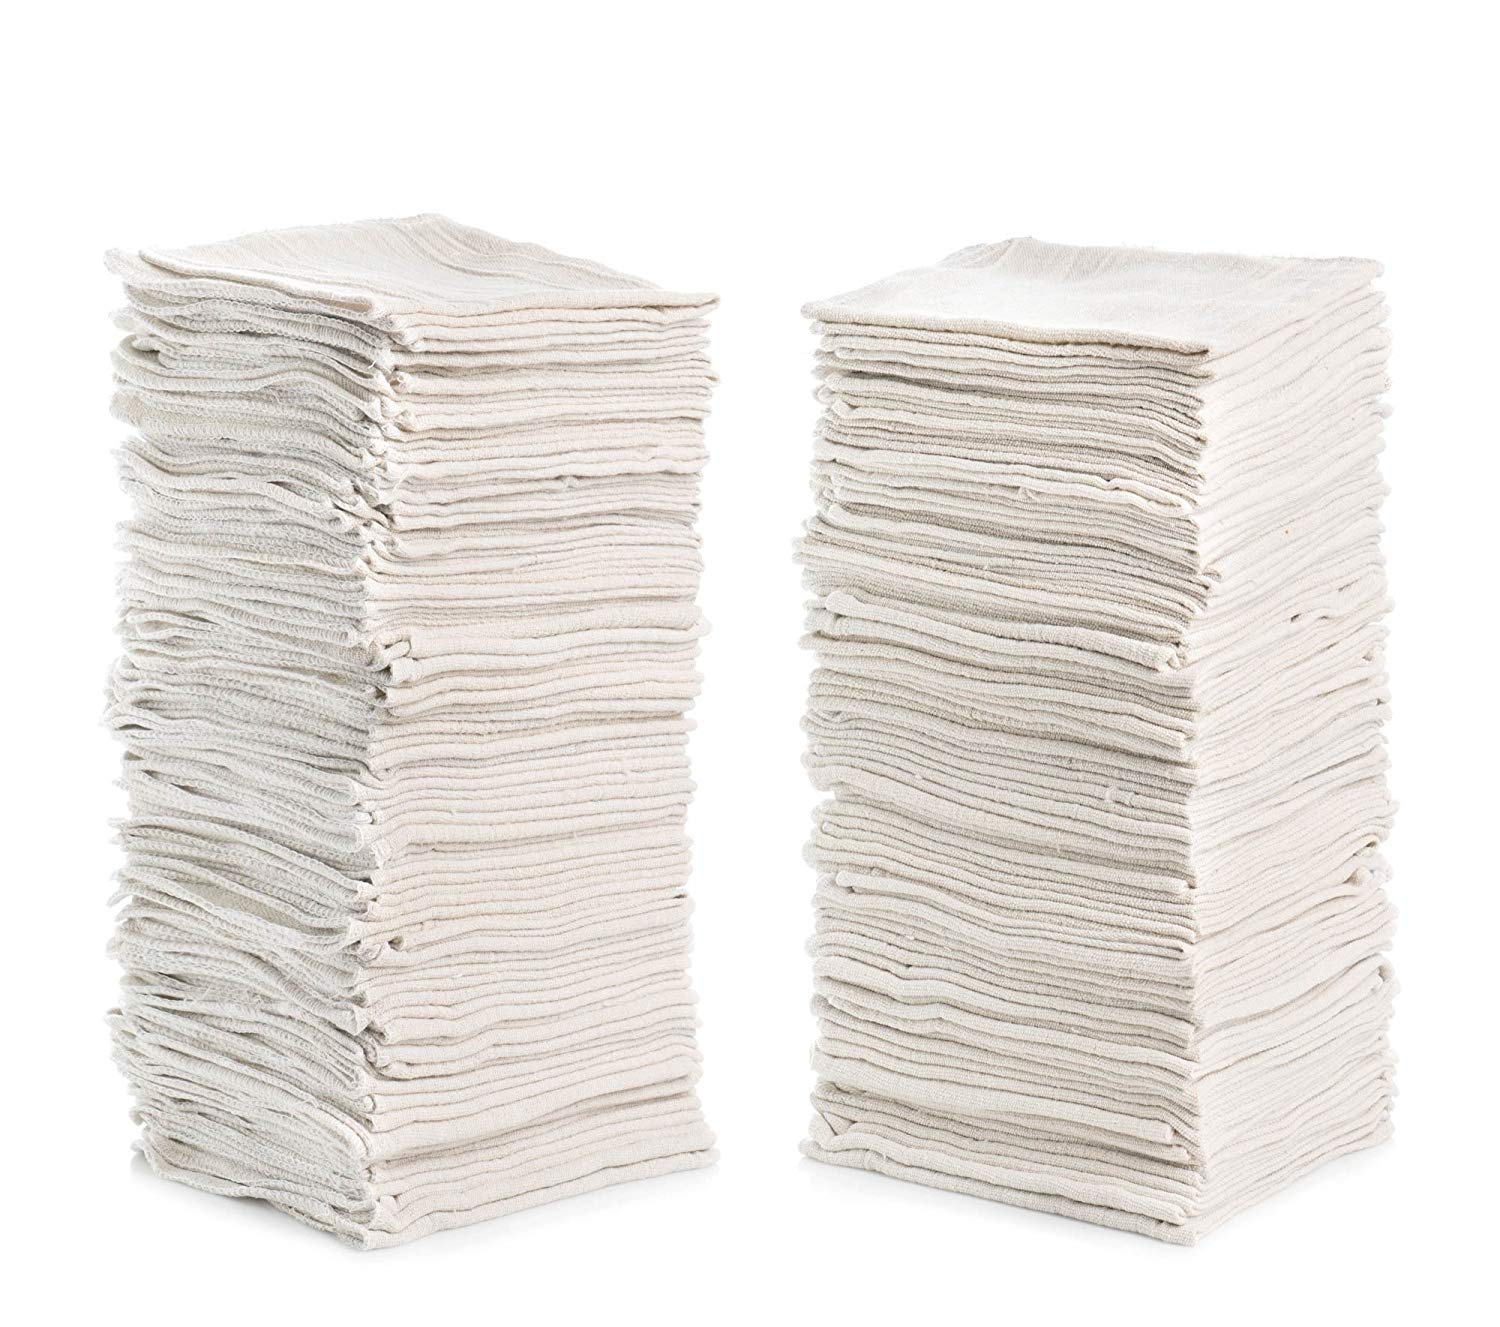 Simpli-Magic 79142 Shop Towels (Pack of 150, Size: 12'' x 14'') Ideal for Cleaning, Auto and Home